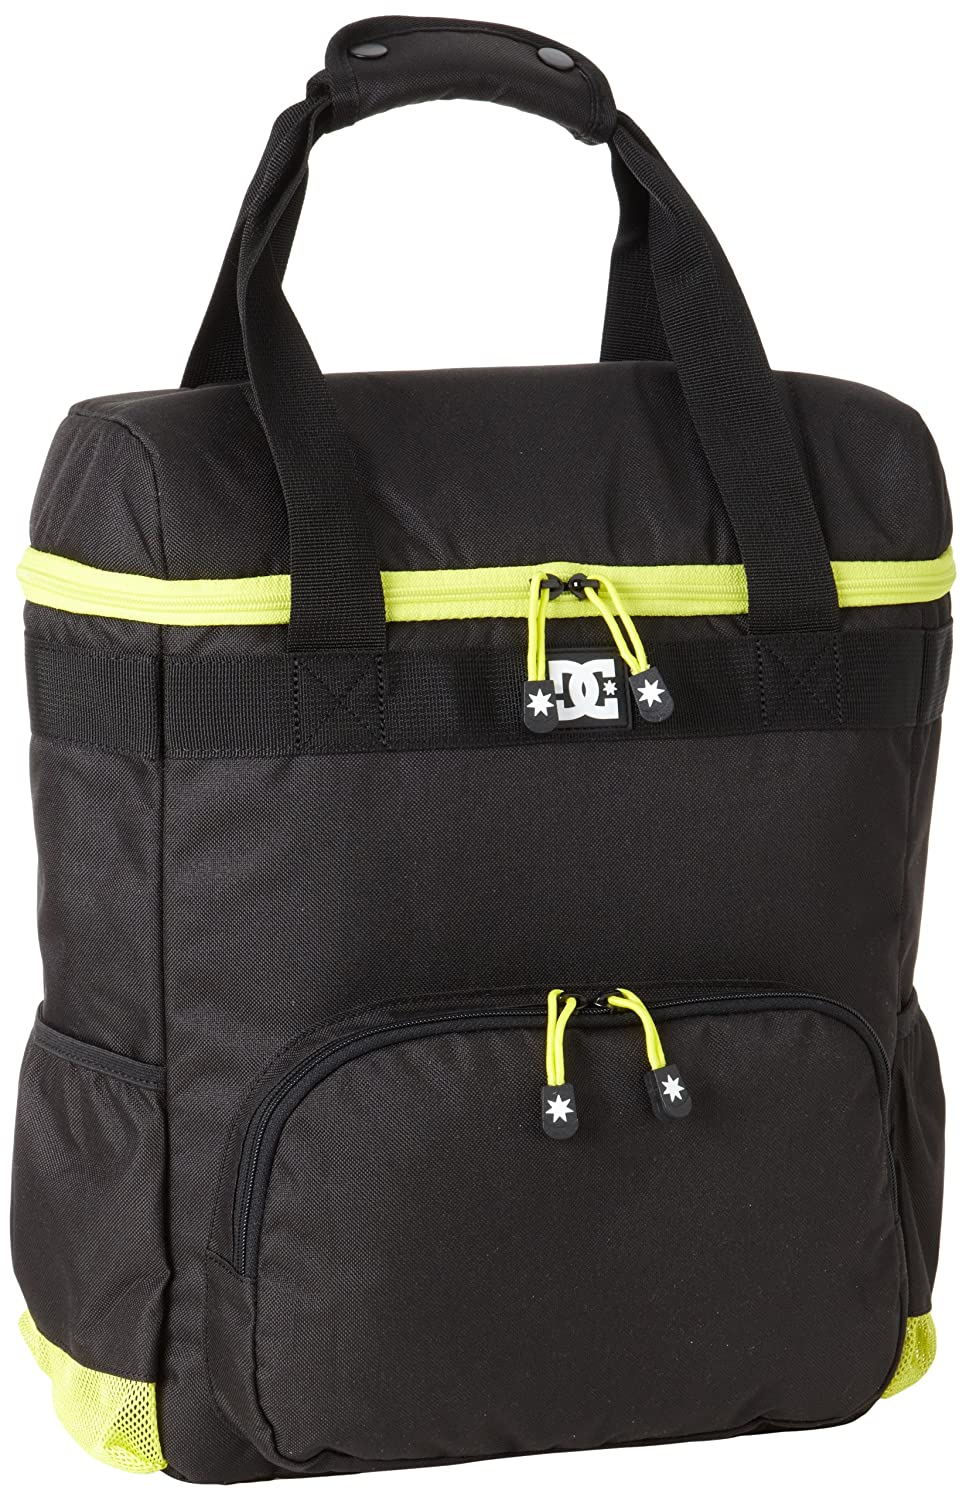 DC Mens Kewler Bag